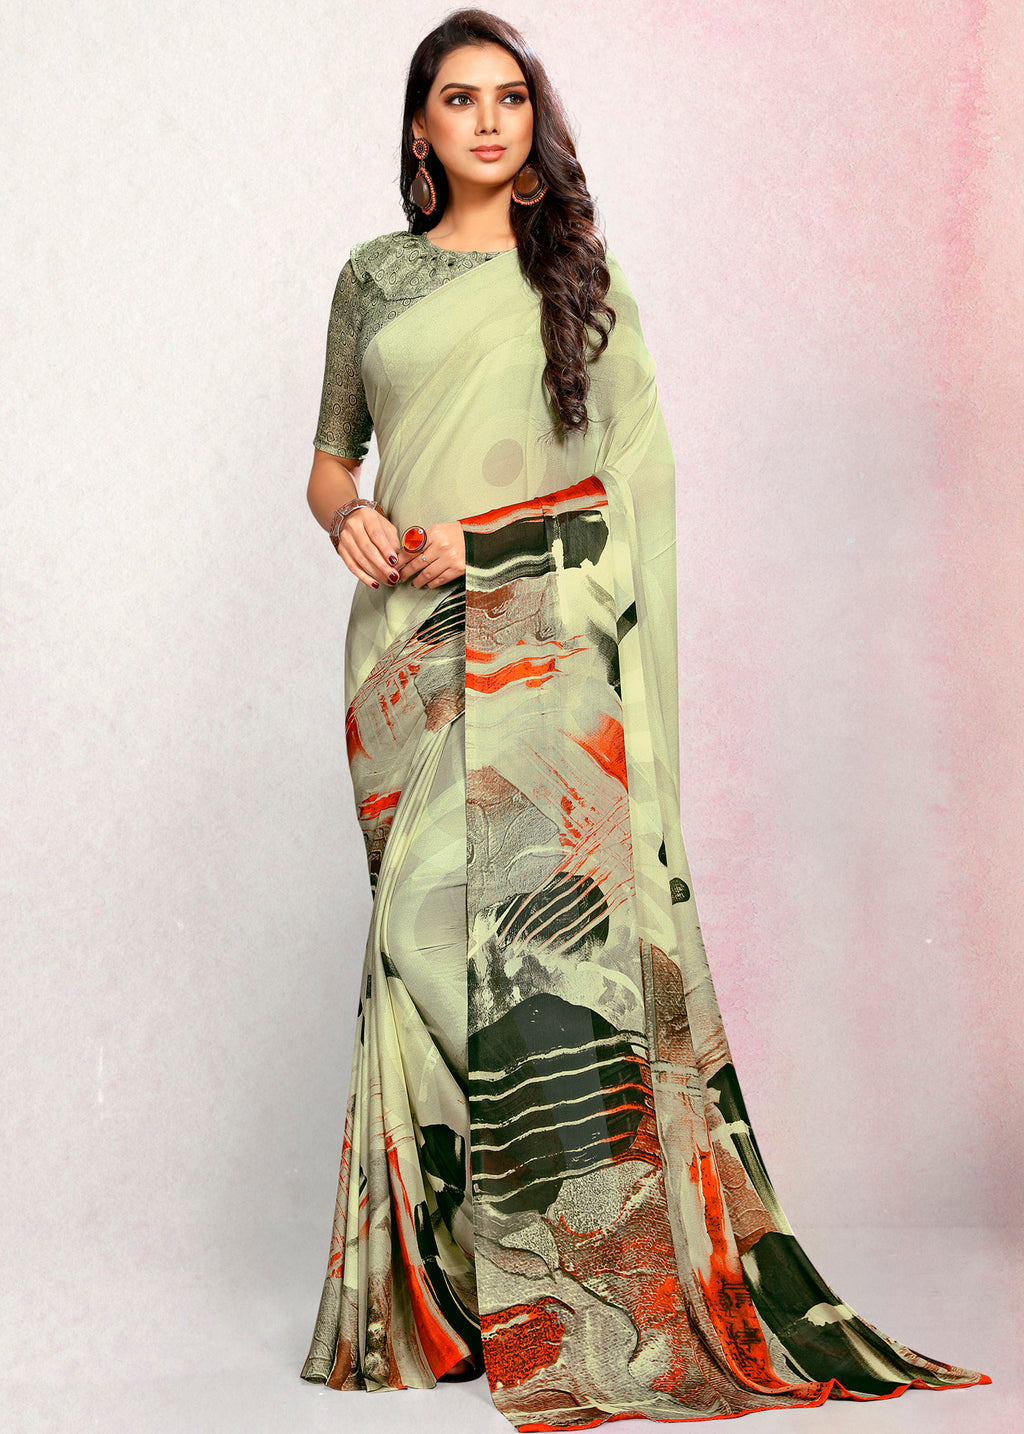 Pastel Green Color Crepe Printed Kitty Party Sarees NYF-9496